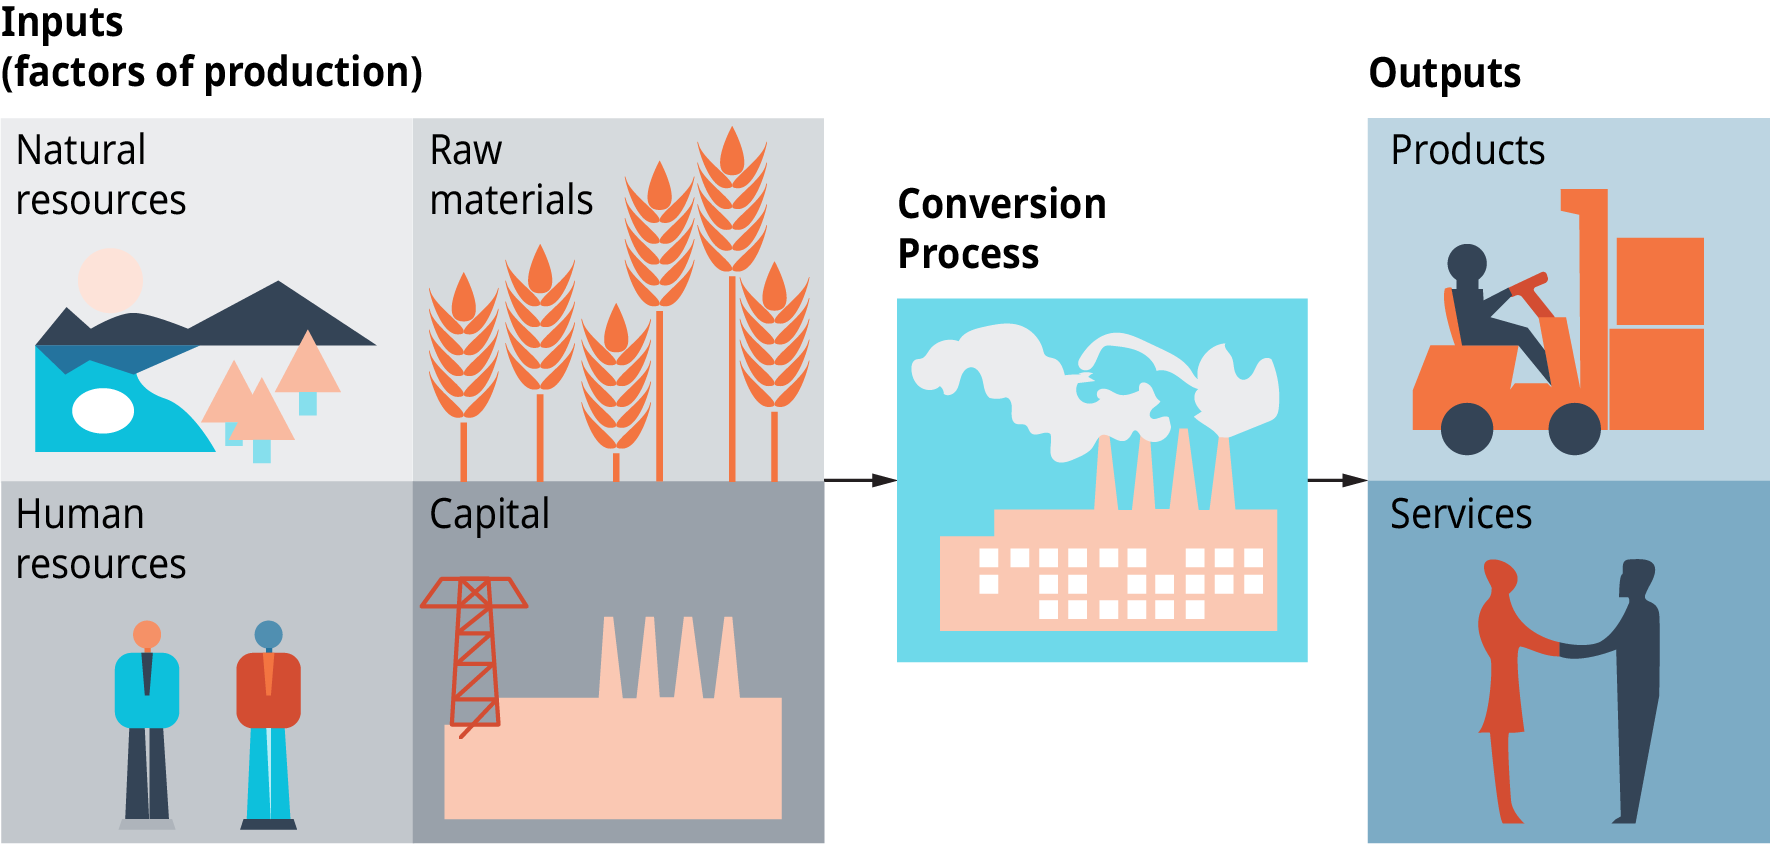 Diagram shows the inputs, which are factors of production, as natural resources, human resources, raw materials, and capital. A conversion process takes place, and the outputs are products and services.